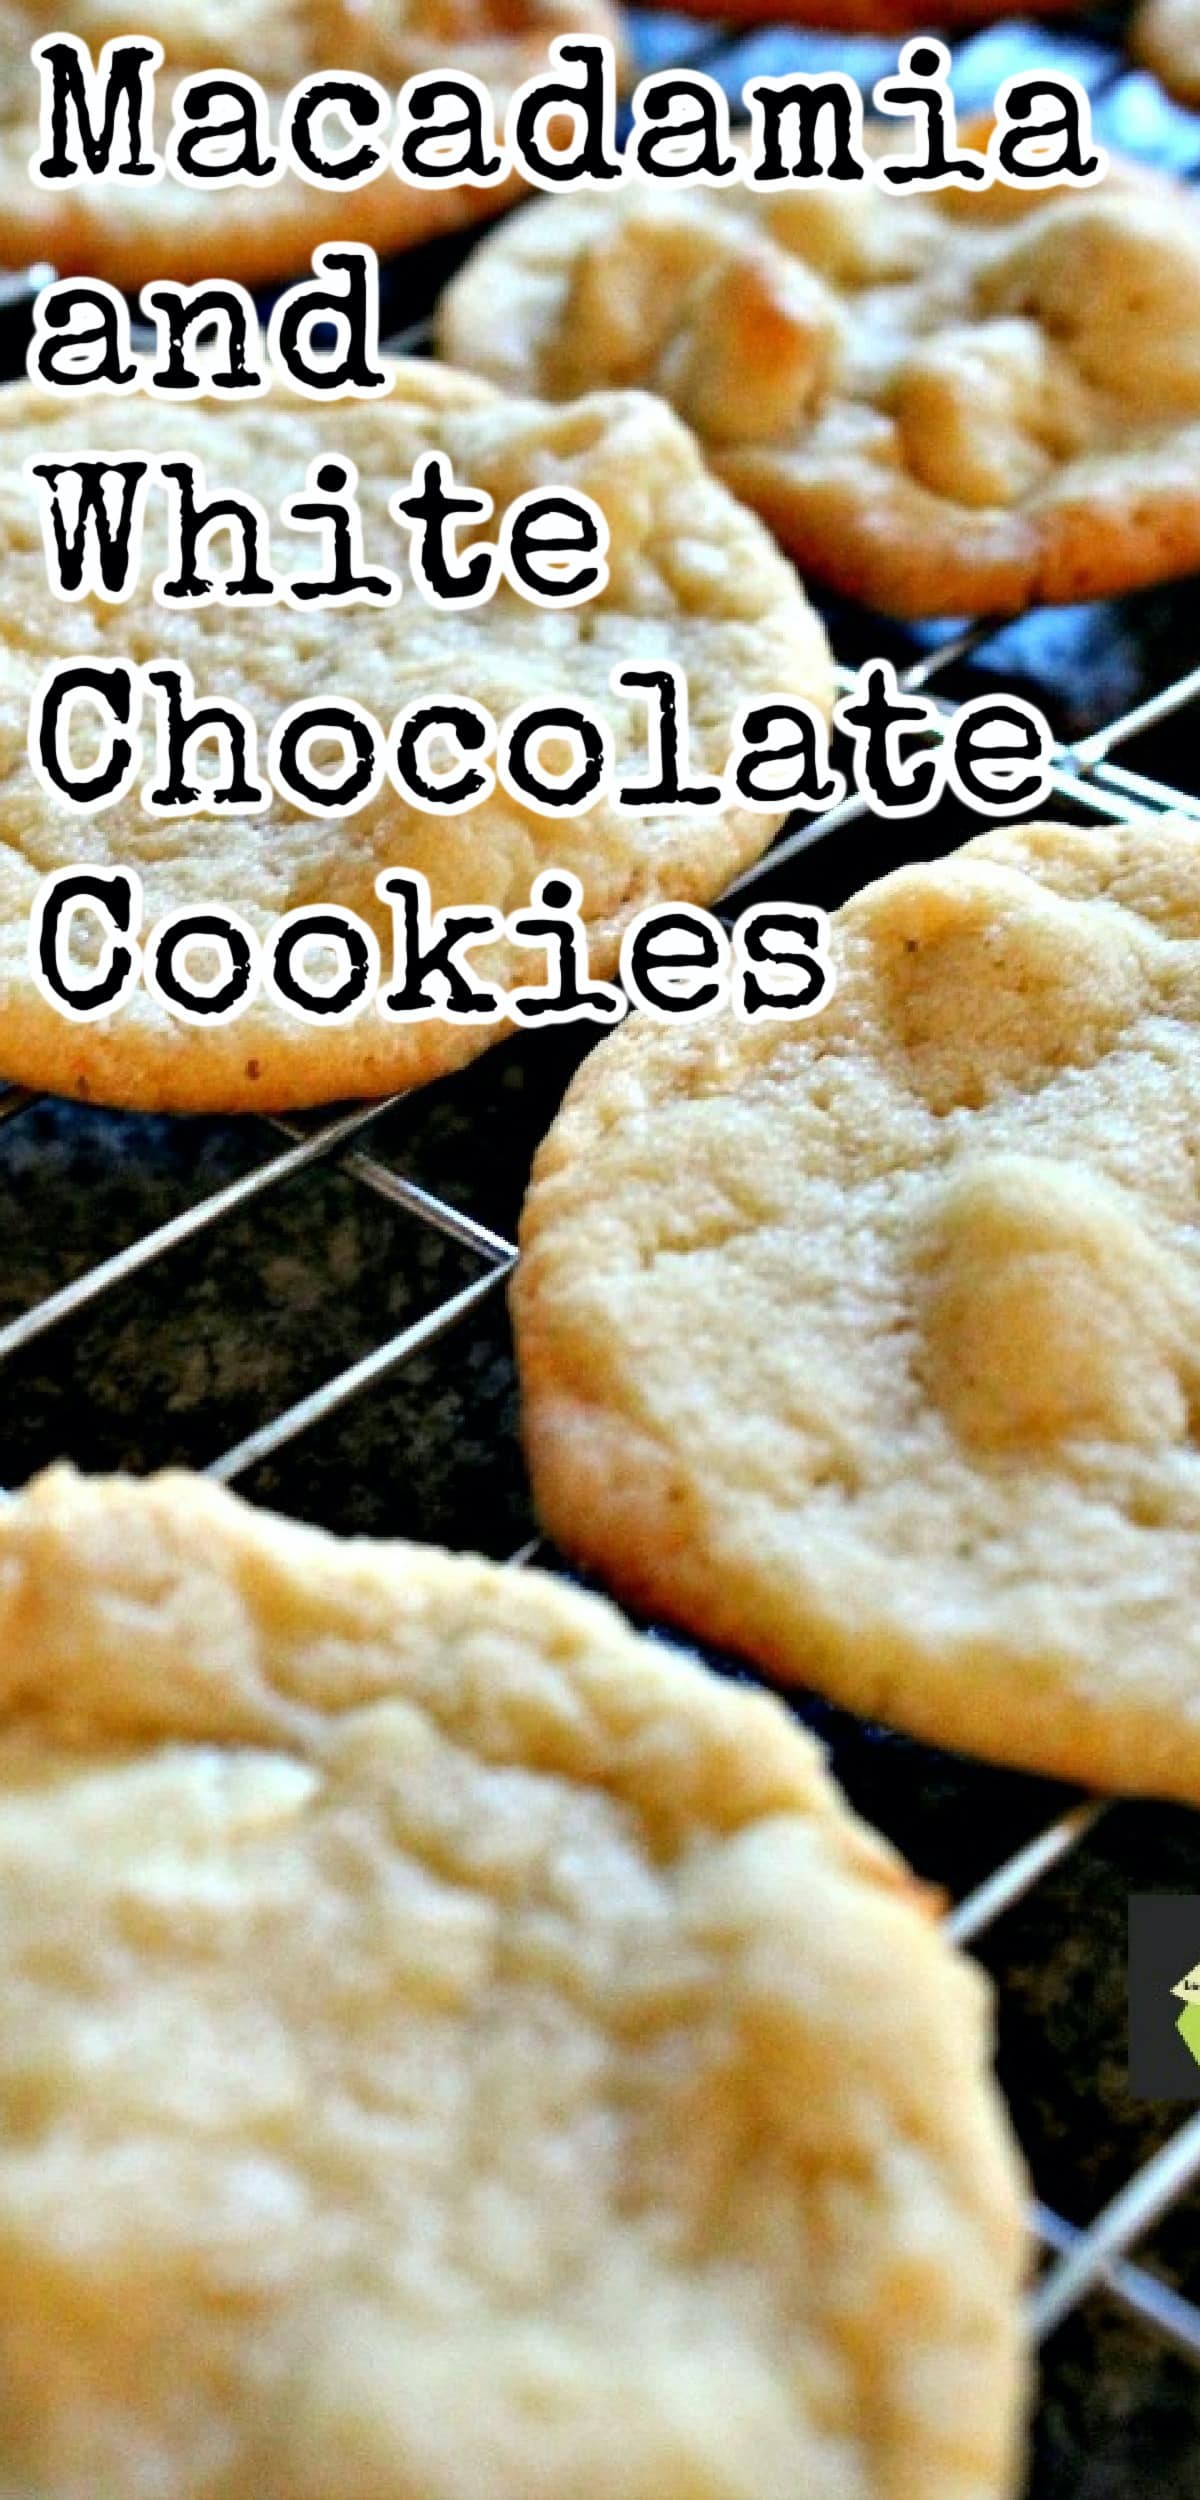 Macadamia and White Chocolate Cookies. Perfect with a cup of tea or glass of milk! A very easy cookie recipe.